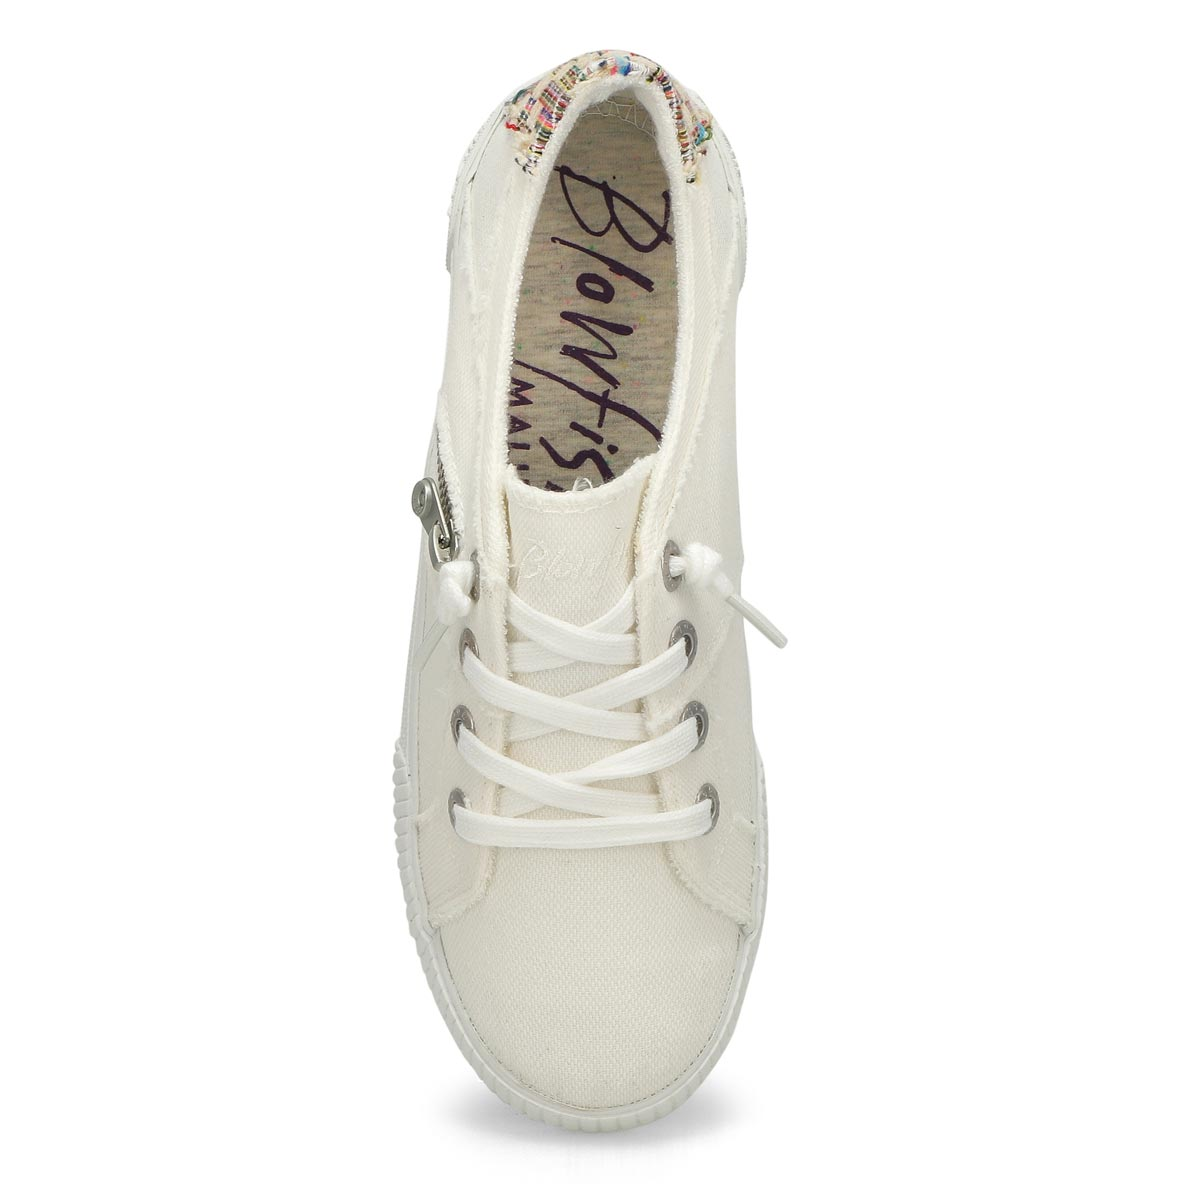 Lds Fruit white lace up fashion sneakers